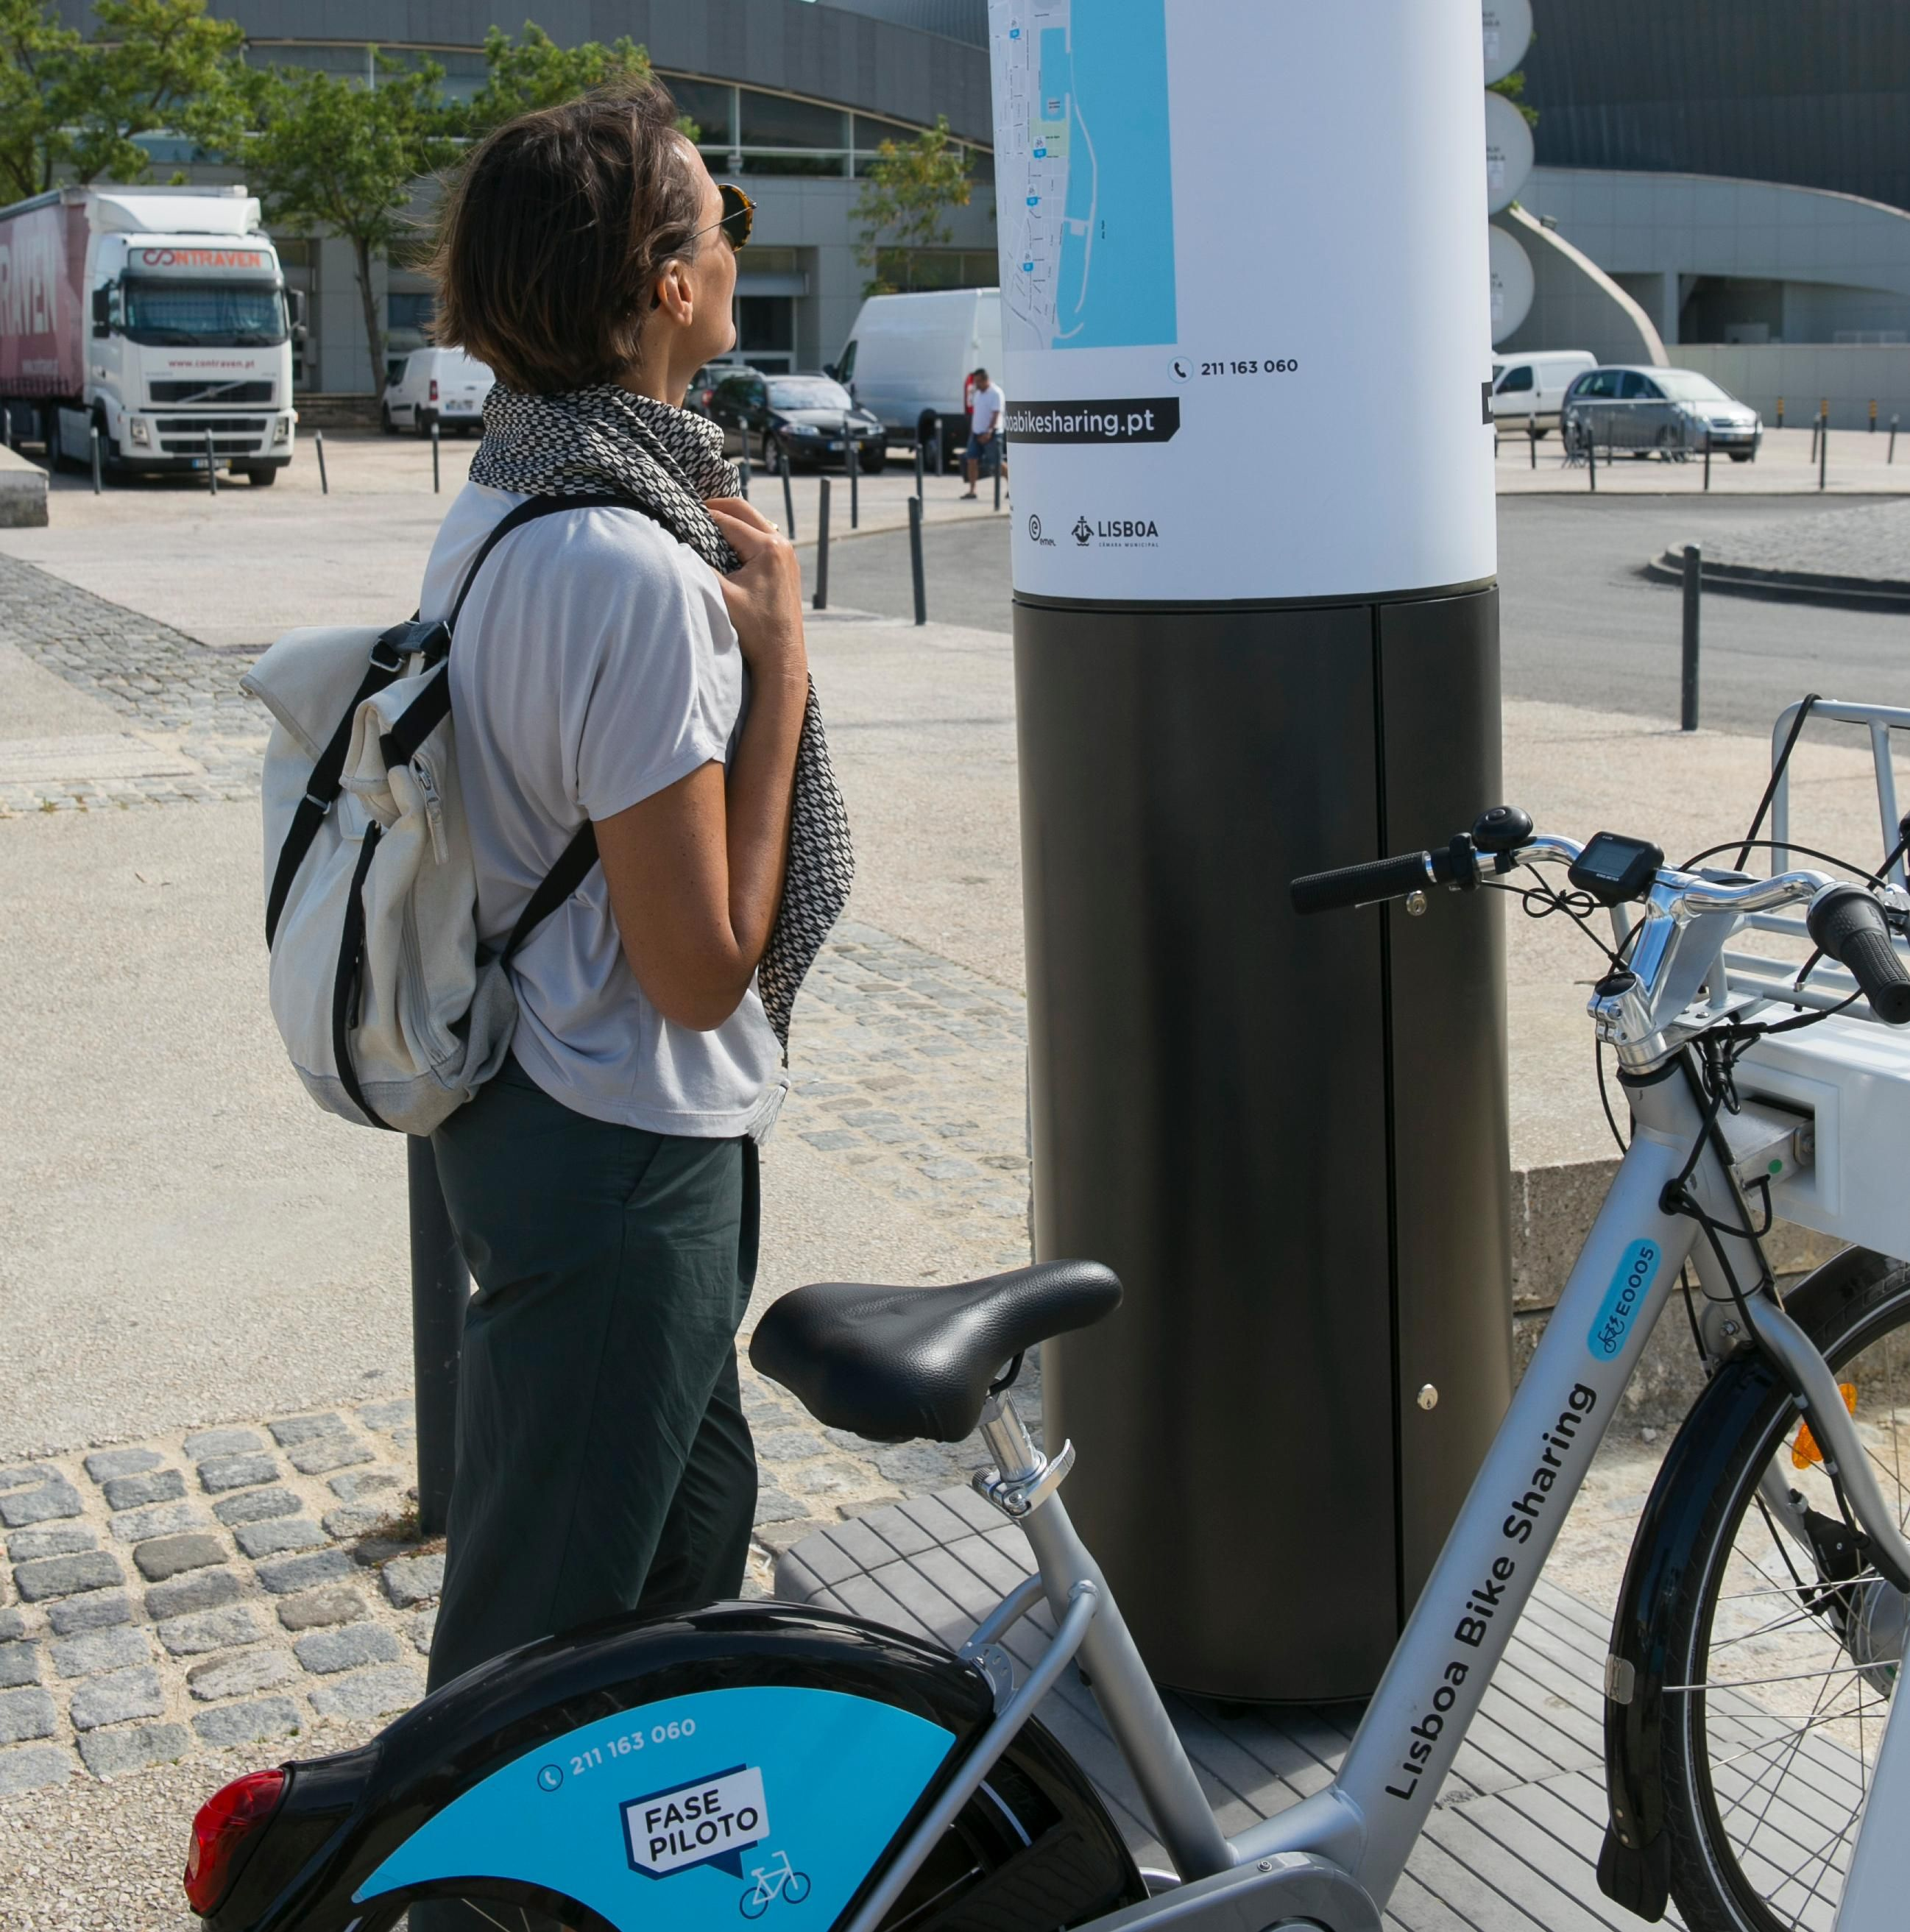 Hilly Lisbon Launches Electric Bike Share System In Bid To Solve